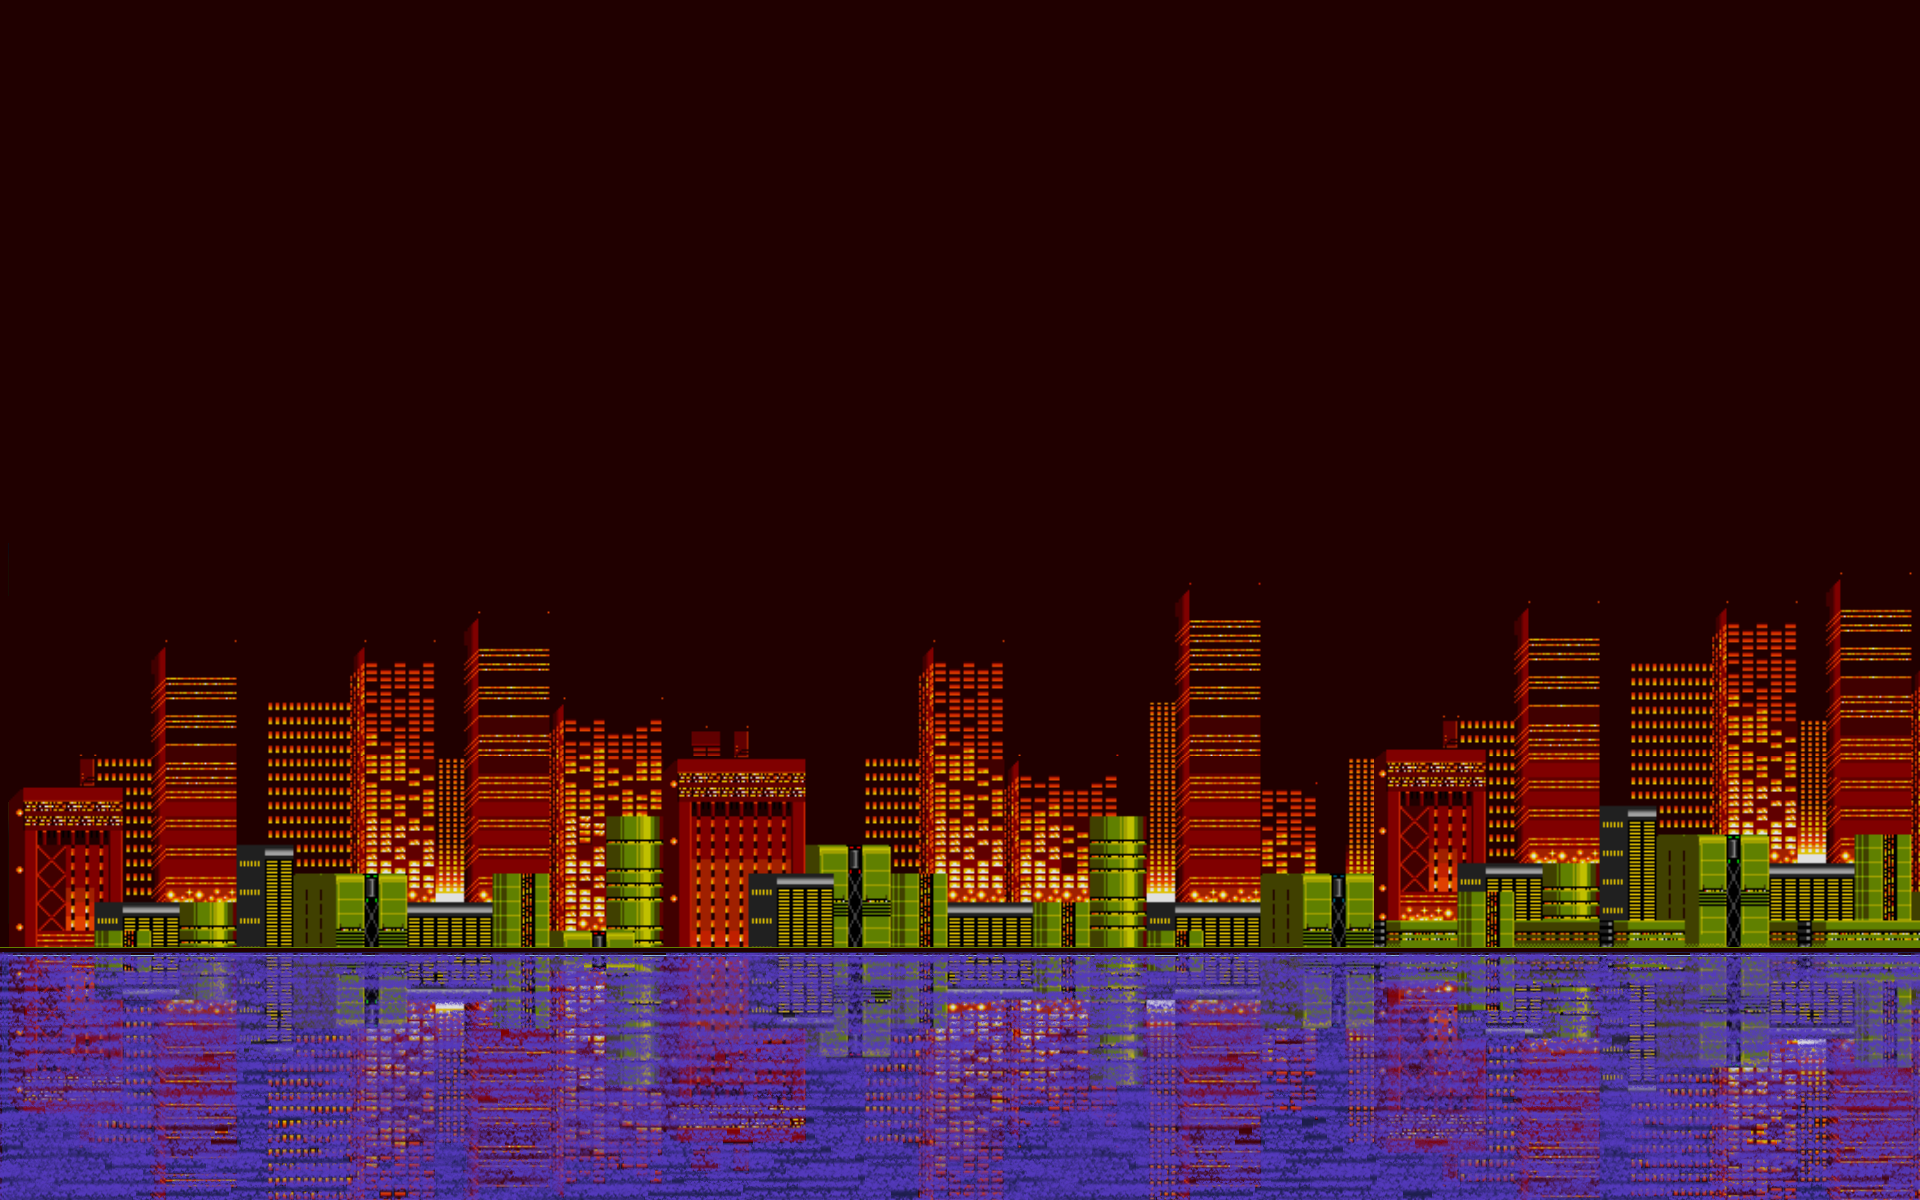 Android Wallpaper 8 Bit Landscapes